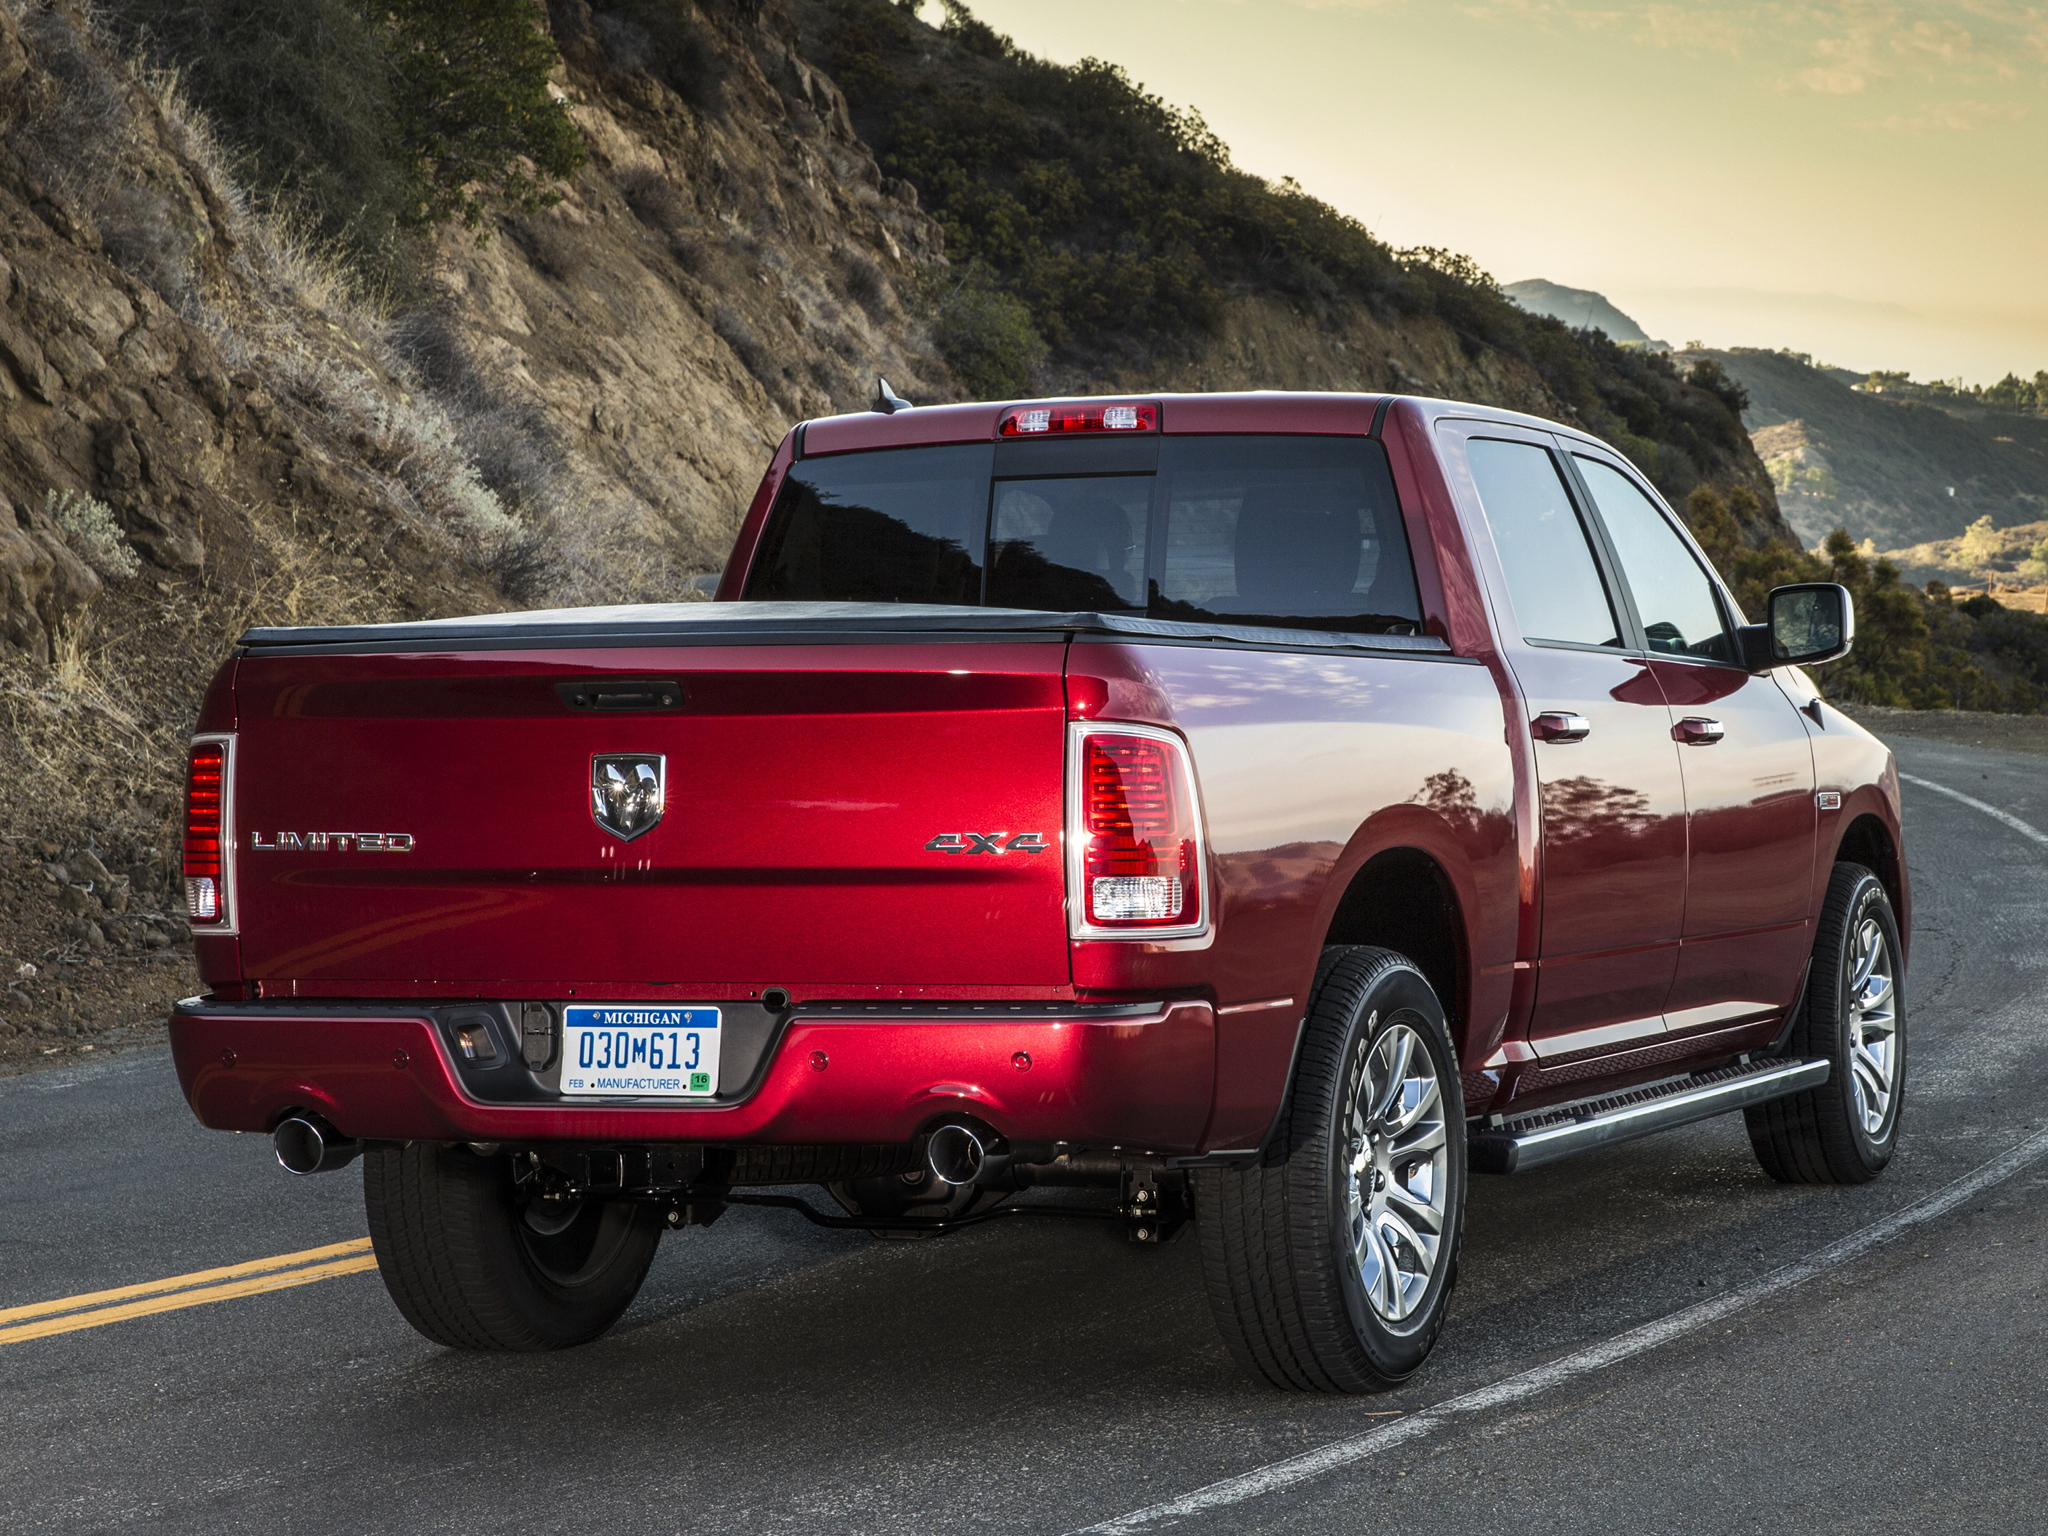 2014 Dodge Ram 1500 Laramie Limited Crew Cab 4x4 pickup wallpaper